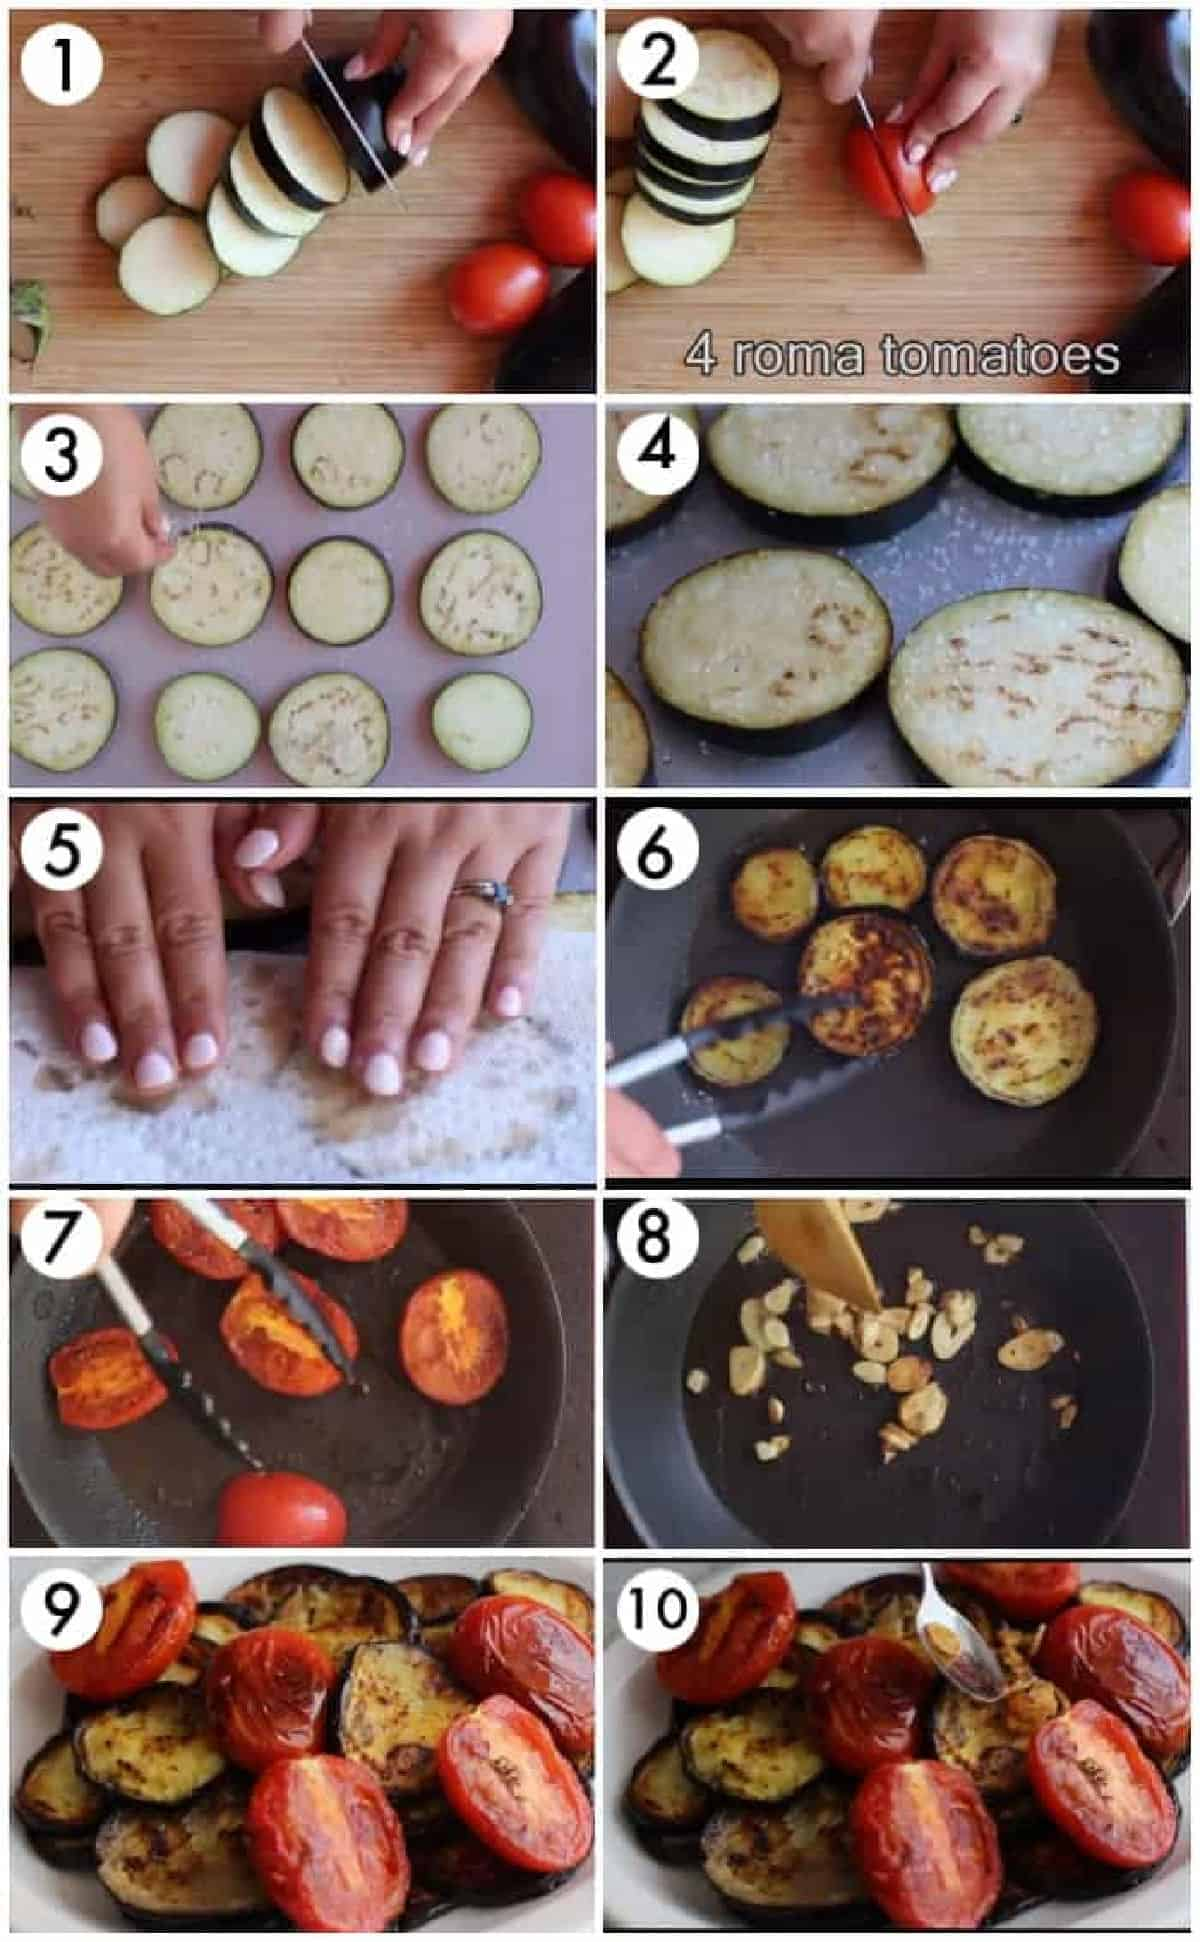 salt the eggplant and fry in oil. fry the tomatoes and garlic and serve with yogurt sauce.